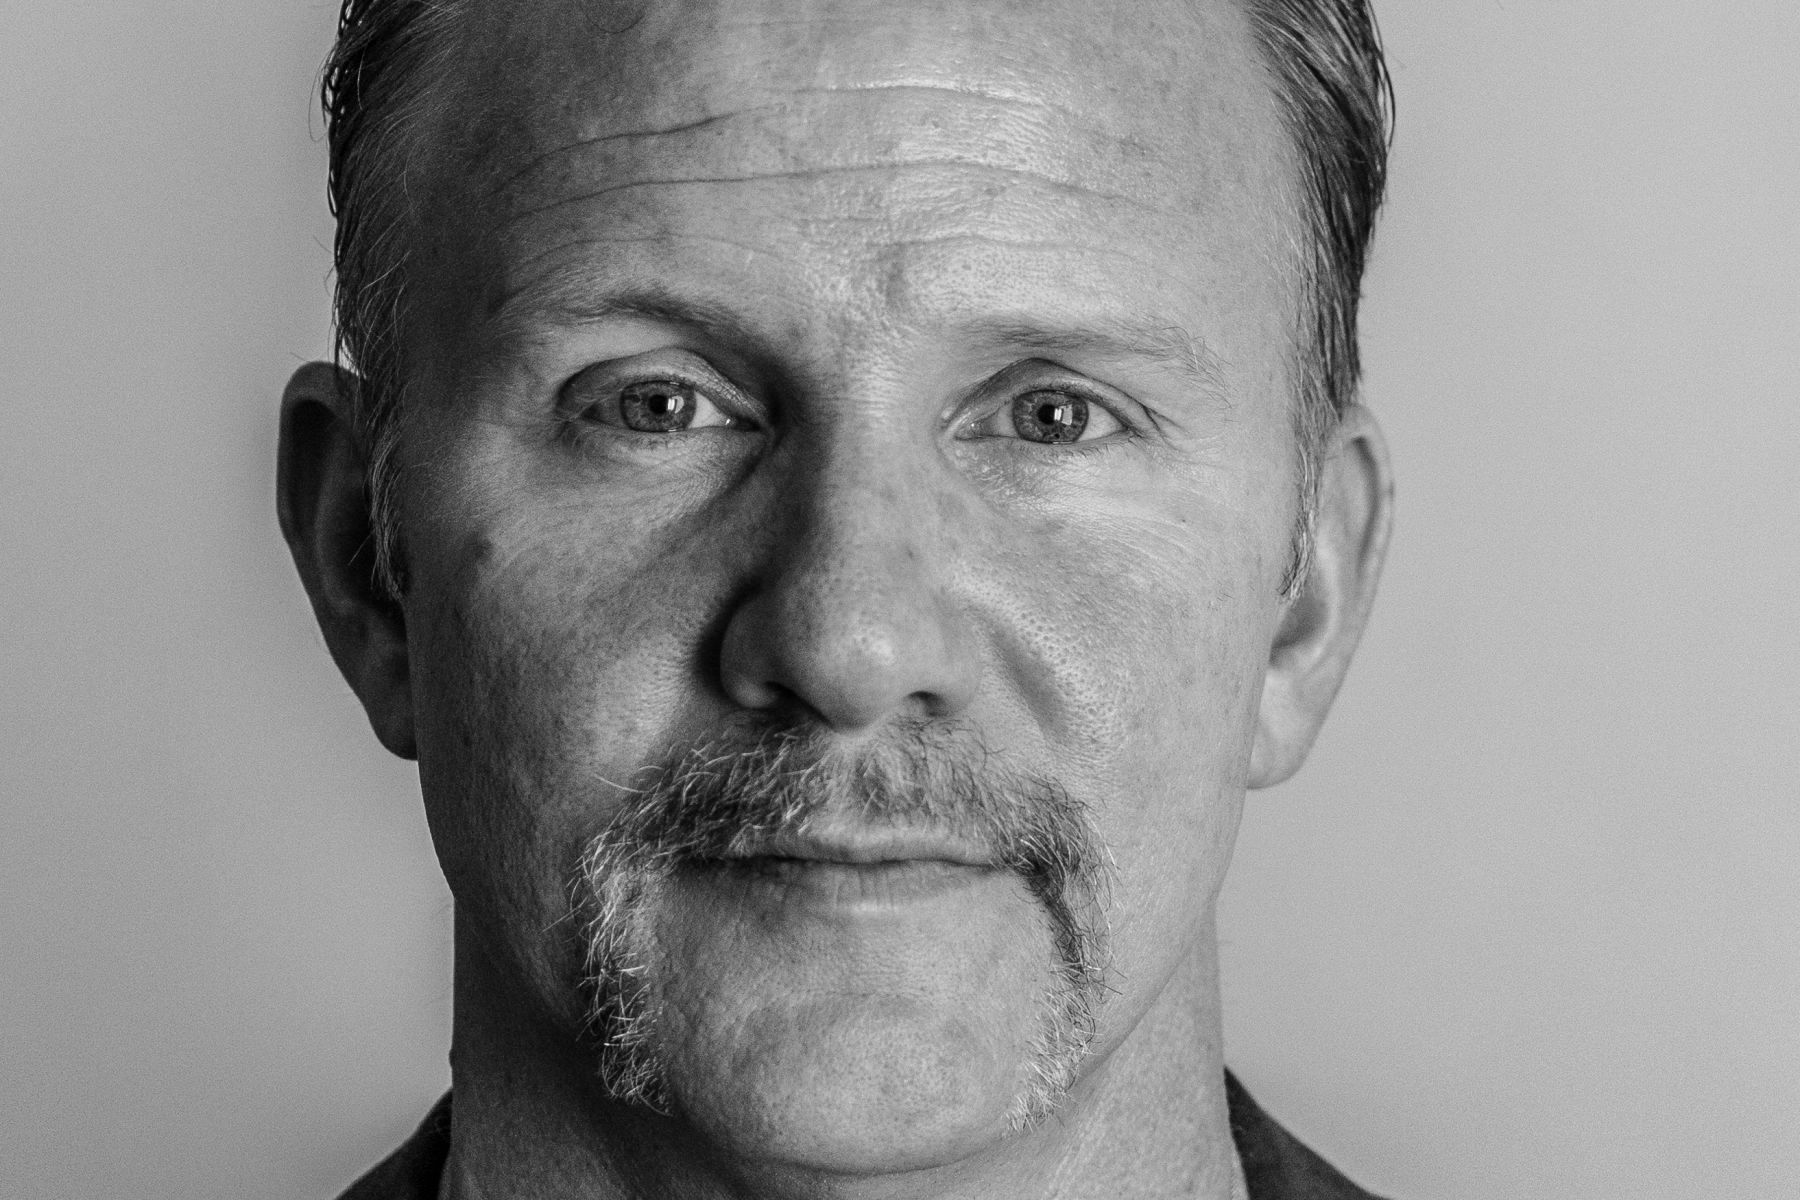 Documentary Filmmaker Morgan Spurlock, New York City, 2015